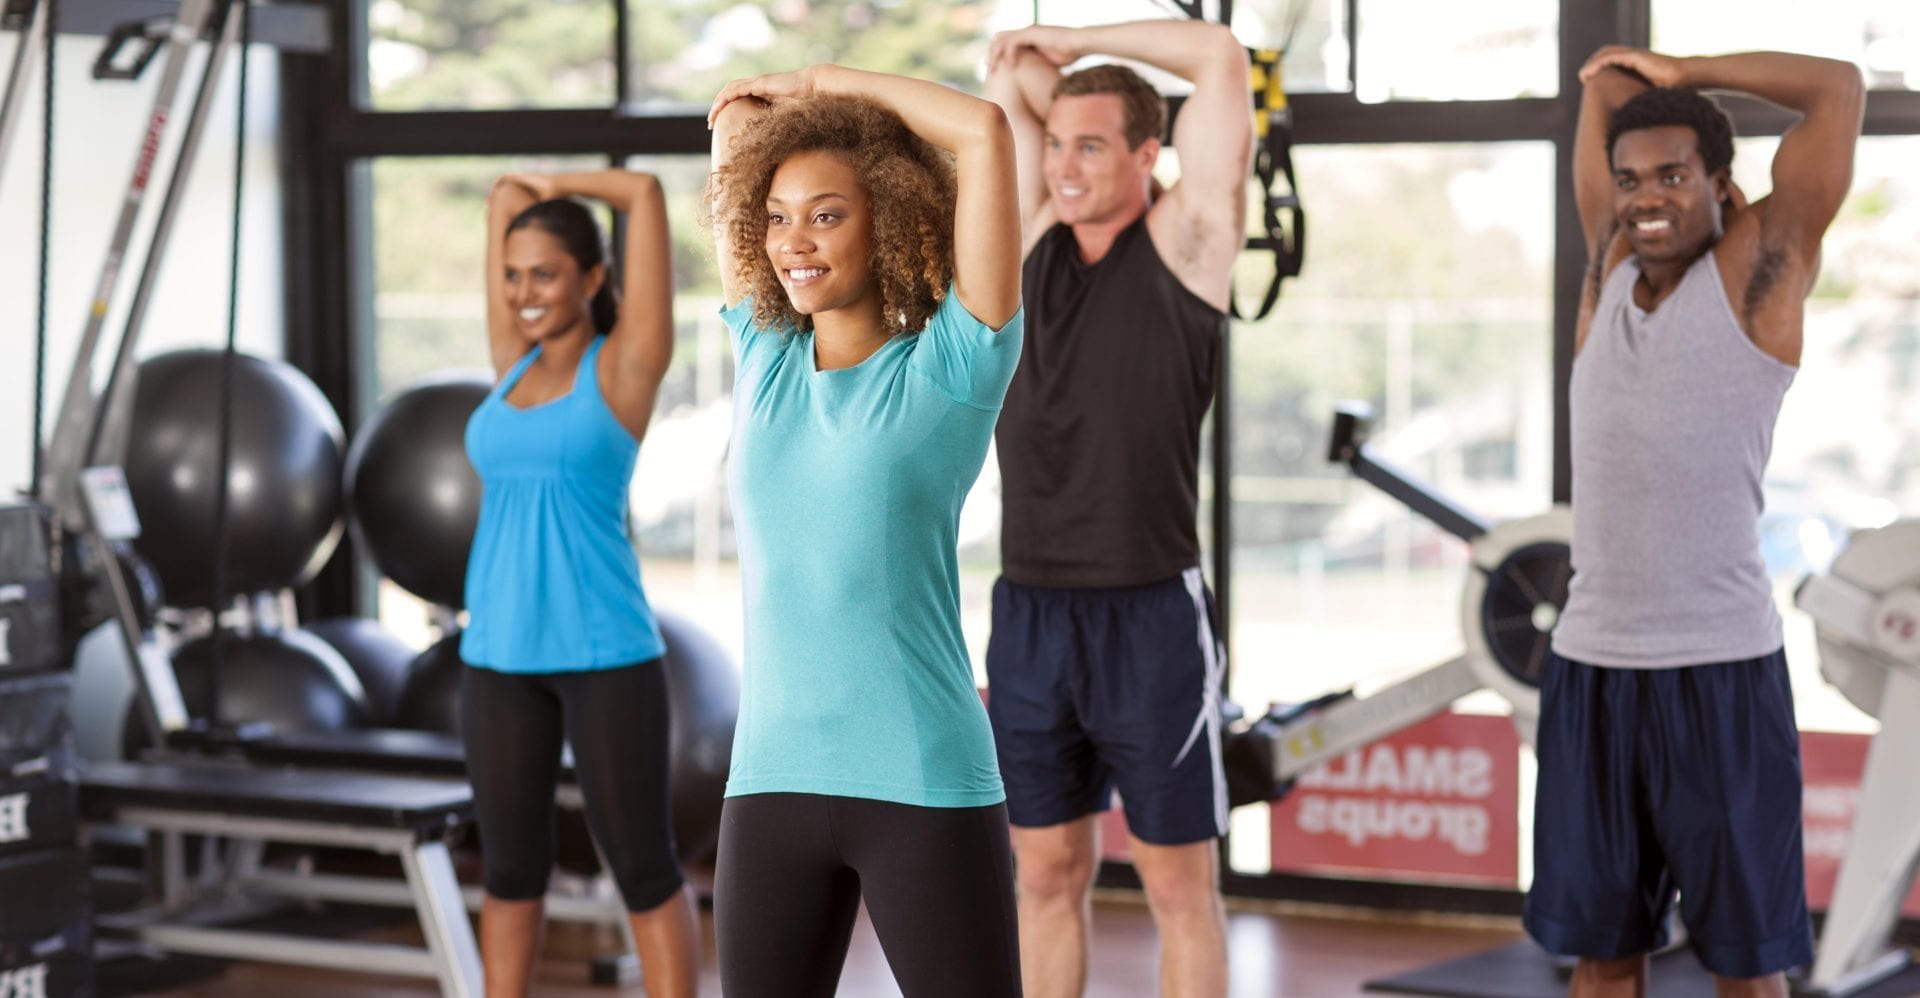 group fitness stretch scaled e1591301888543